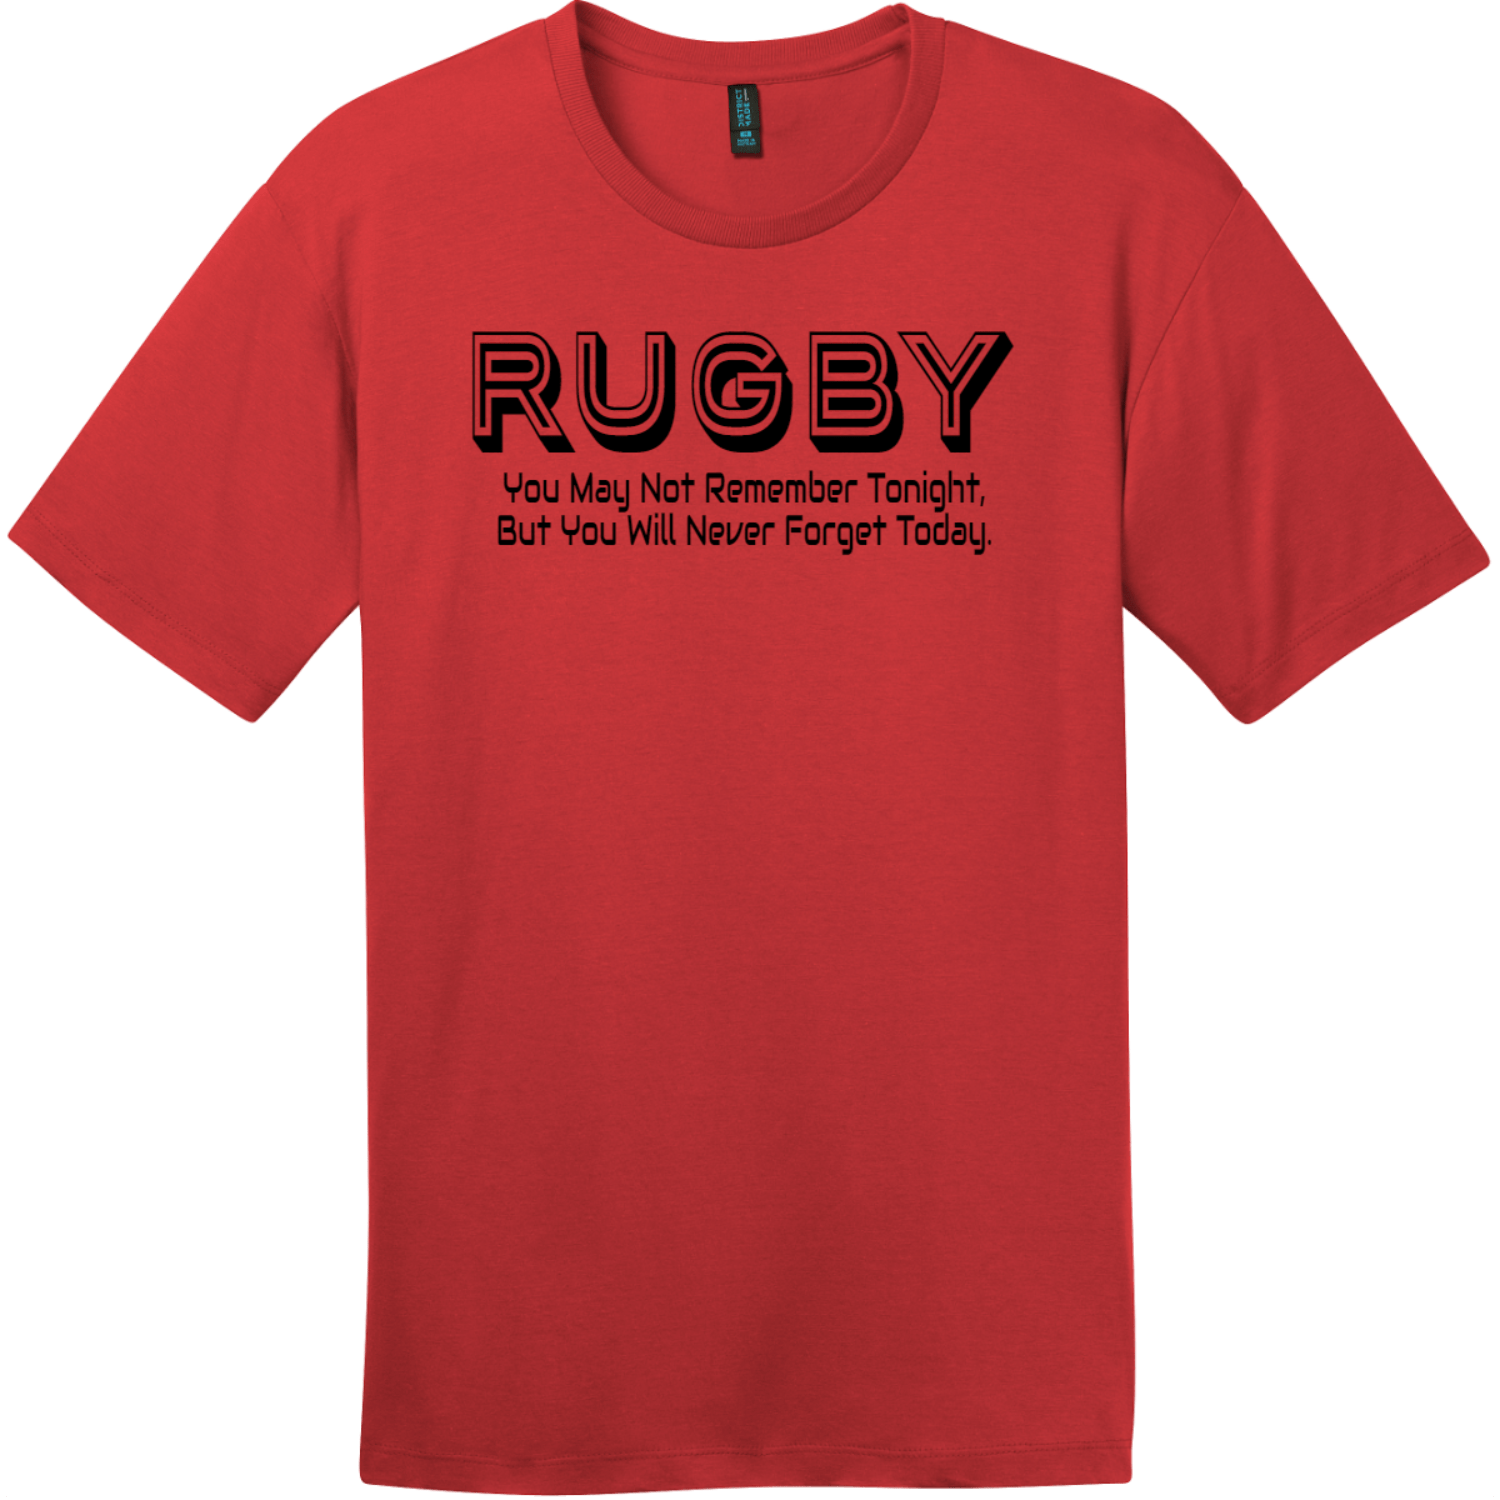 Rugby You May Not Remember Tonight T-Shirt Classic Red District Perfect Weight Tee DT104